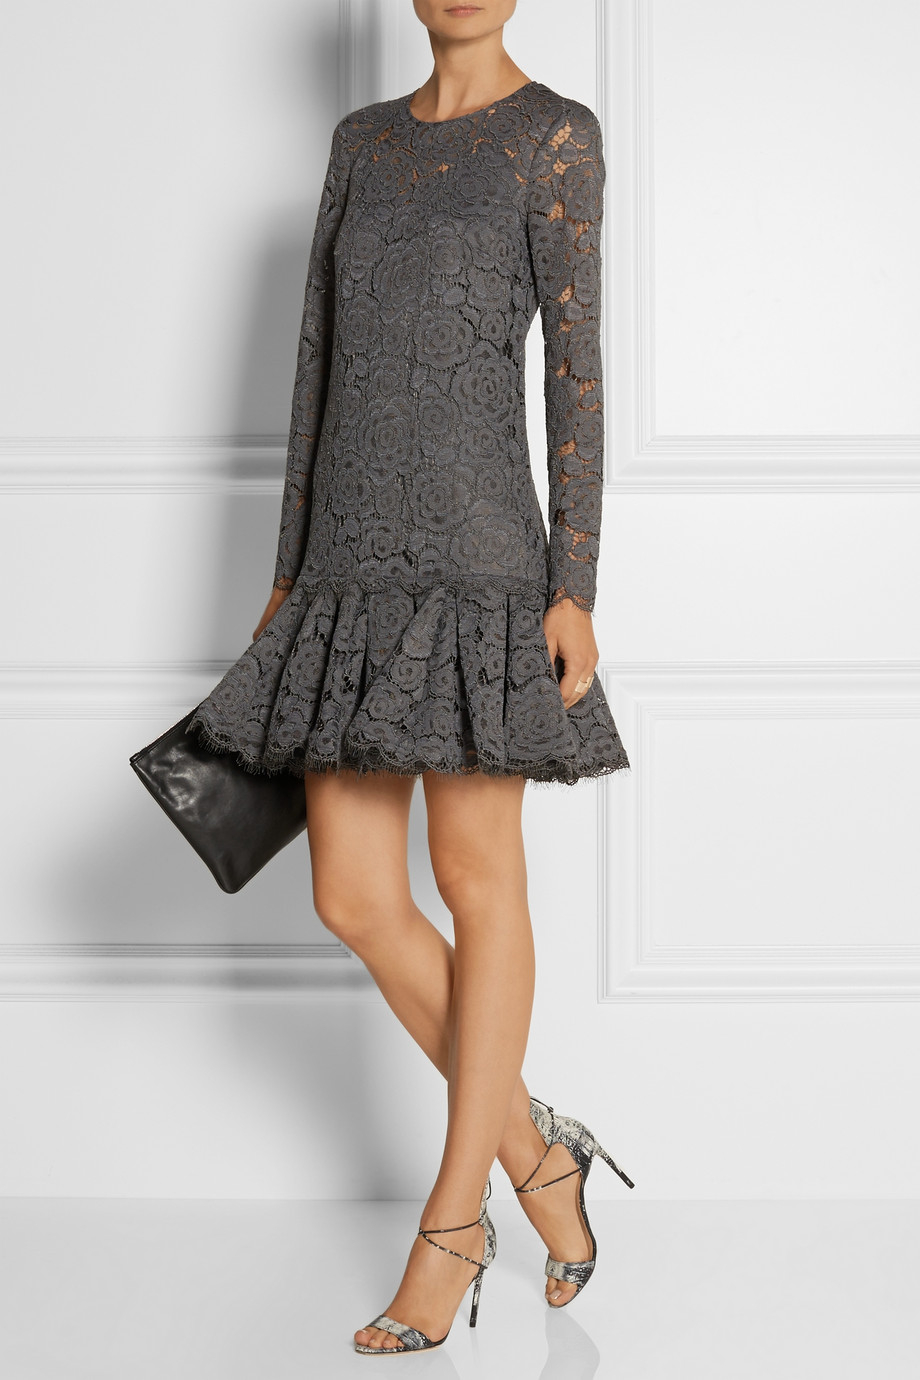 Wedding Gray Lace Dress dkny floral lace dress in gray lyst gallery